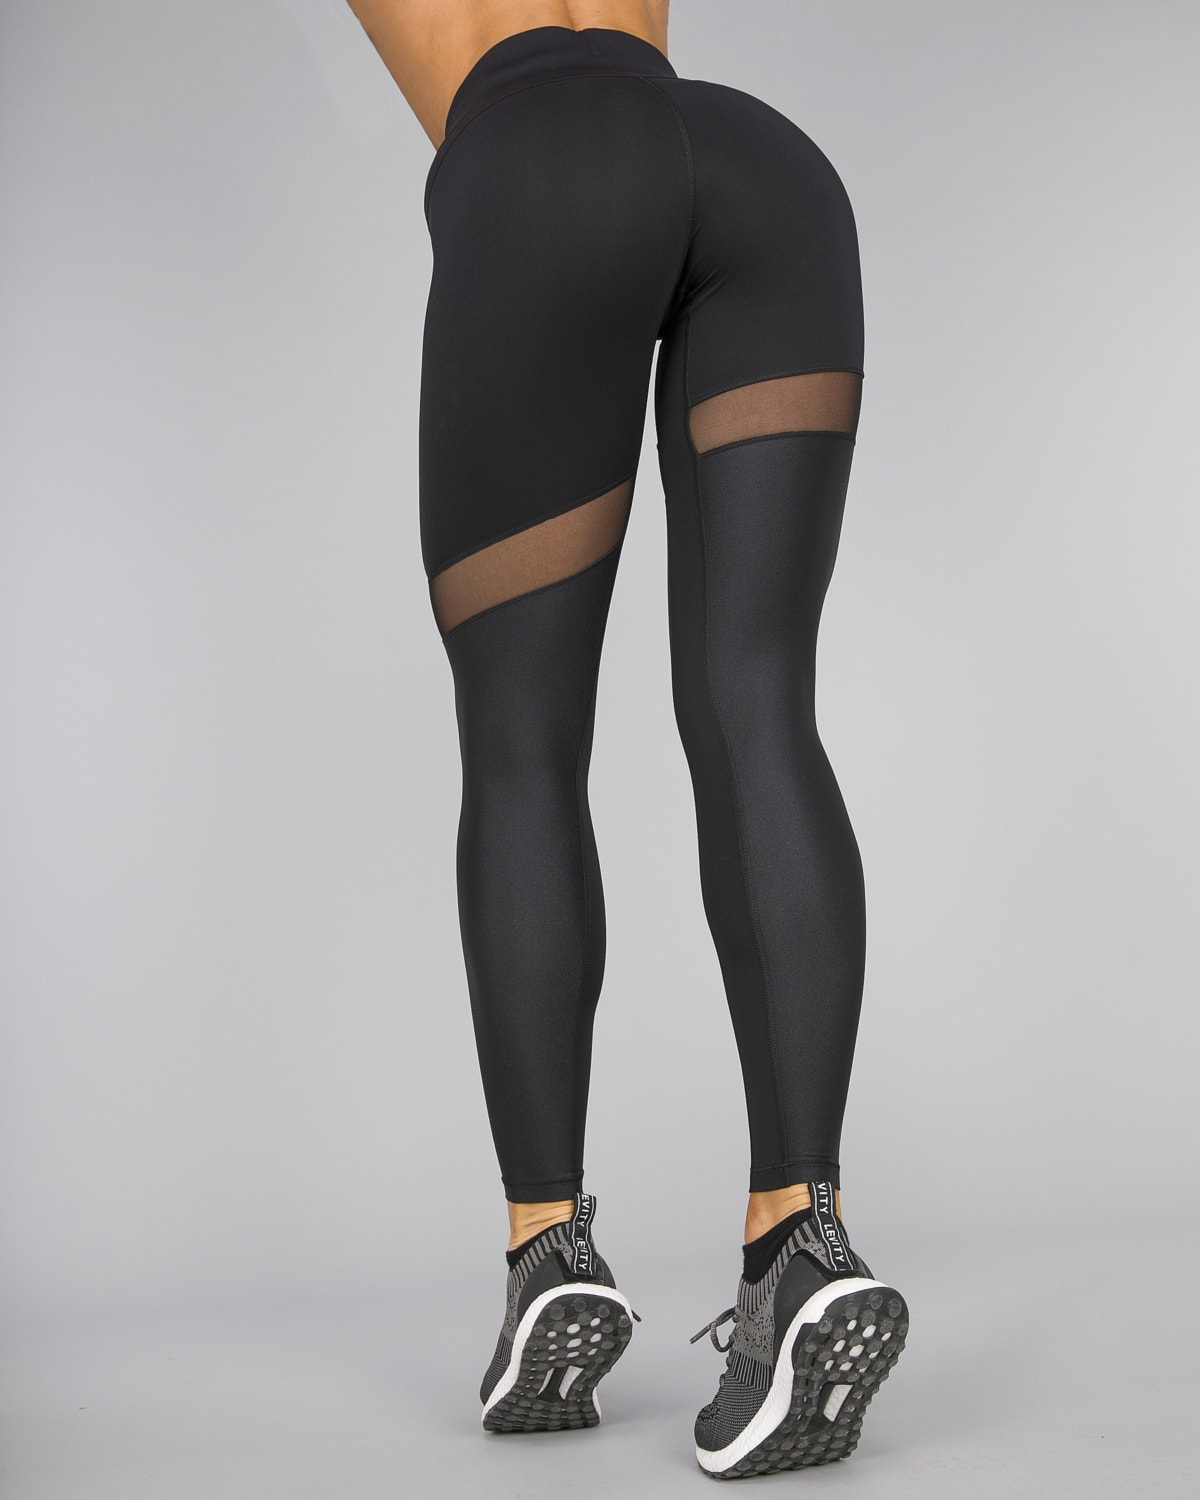 Casall Golden Lux 7:8 Tights15